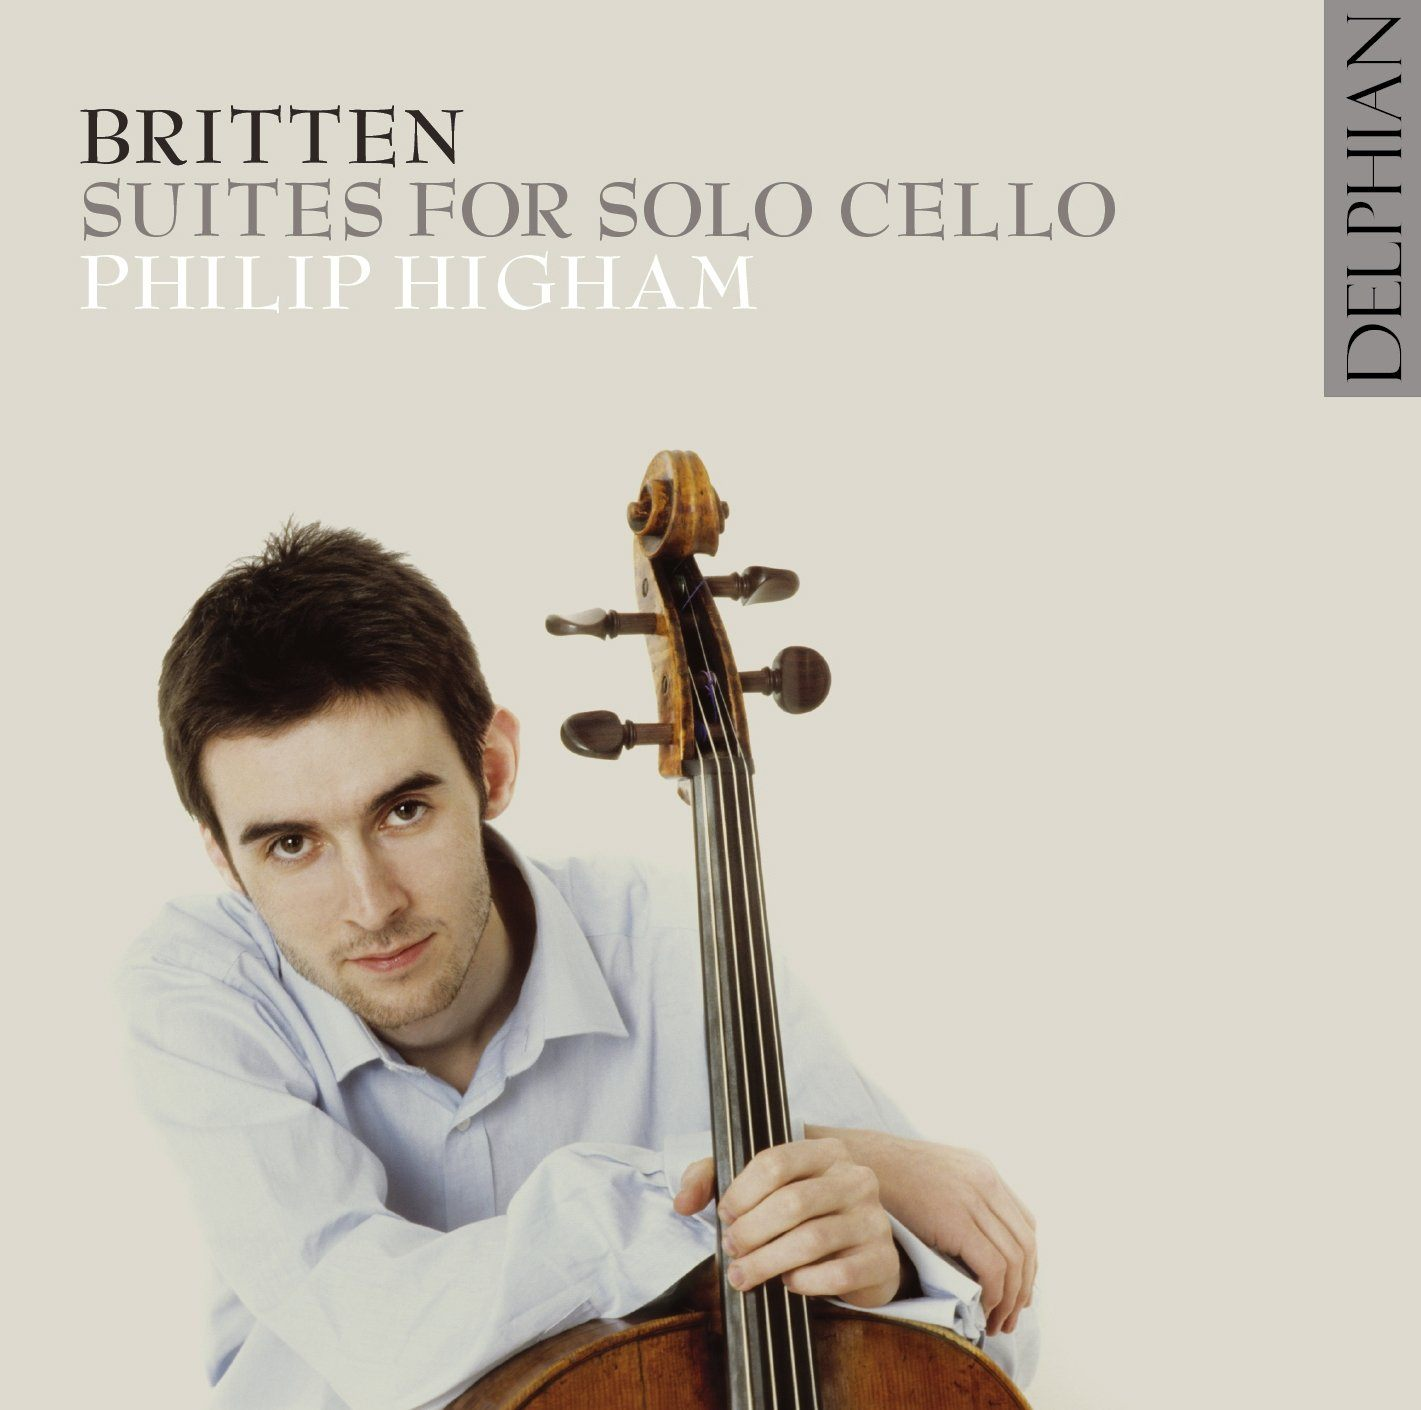 Britten: Suites for Solo Cello CD Delphian Records